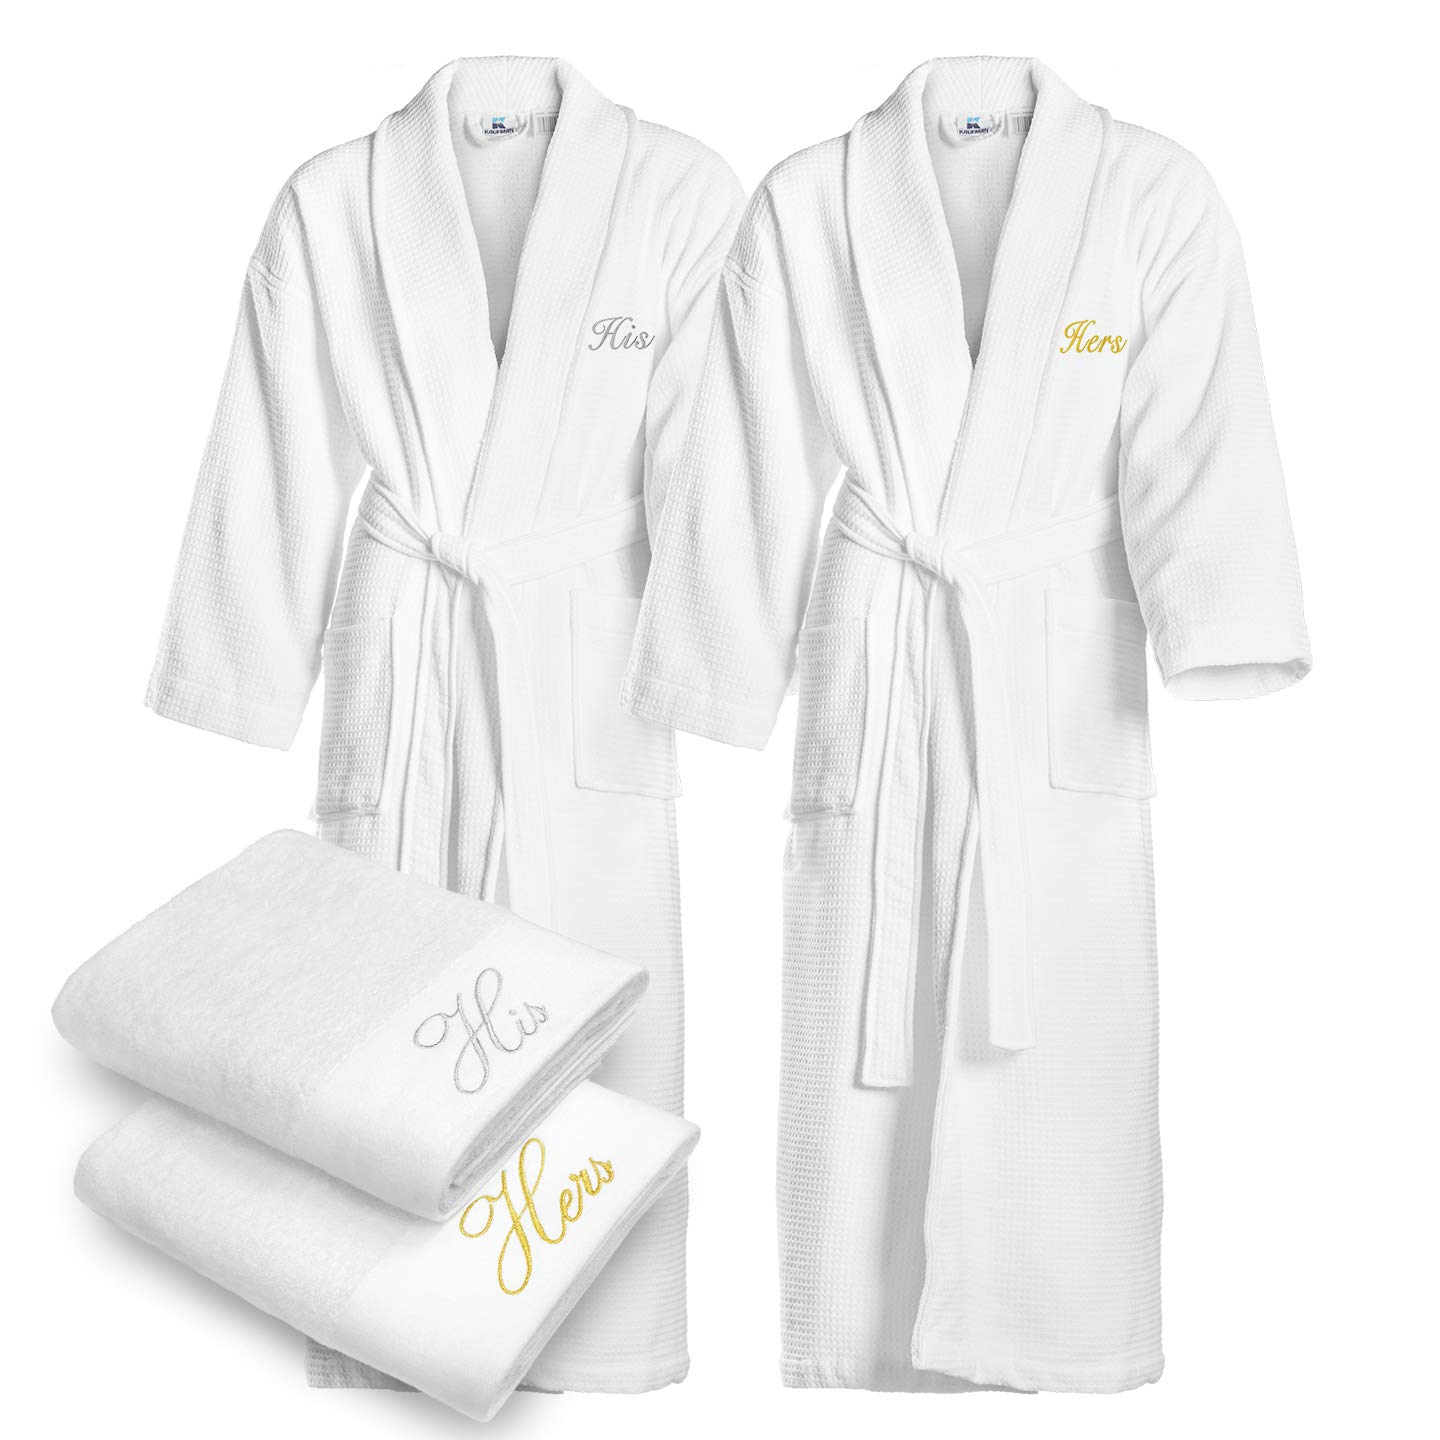 Kaufman - Terry Cloth Bathrobes 100% Cotton - His and Hers Embroidered Waffle Shawl Set of Robes with His and Hers White Towel Set 30''x58'' 4-PK